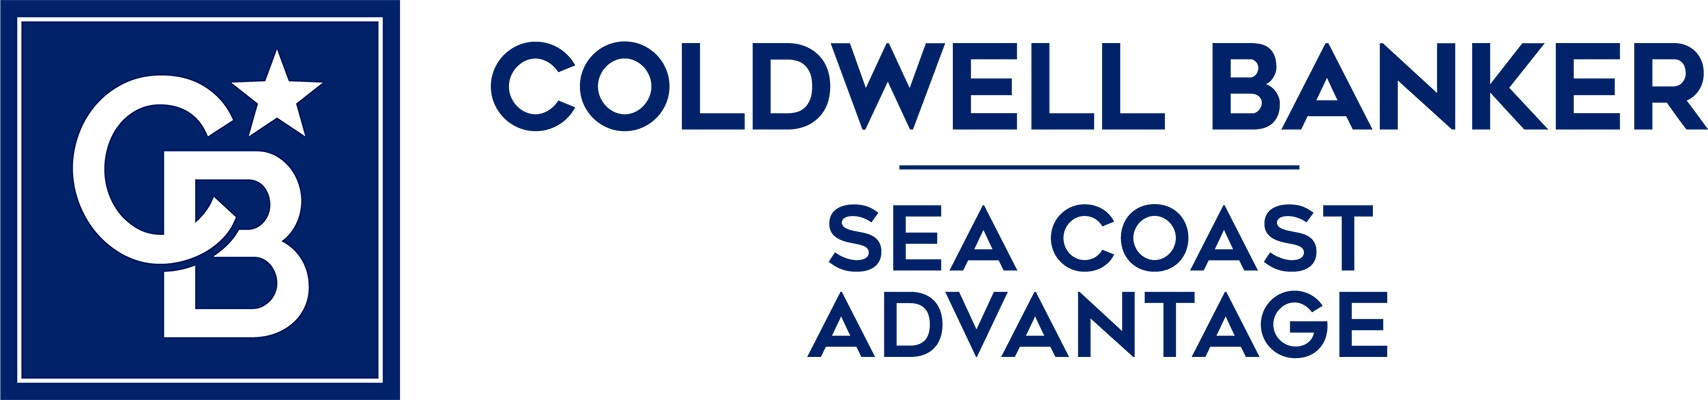 Teresa DeAngelis - Coldwell Banker Sea Coast Advantage Realty